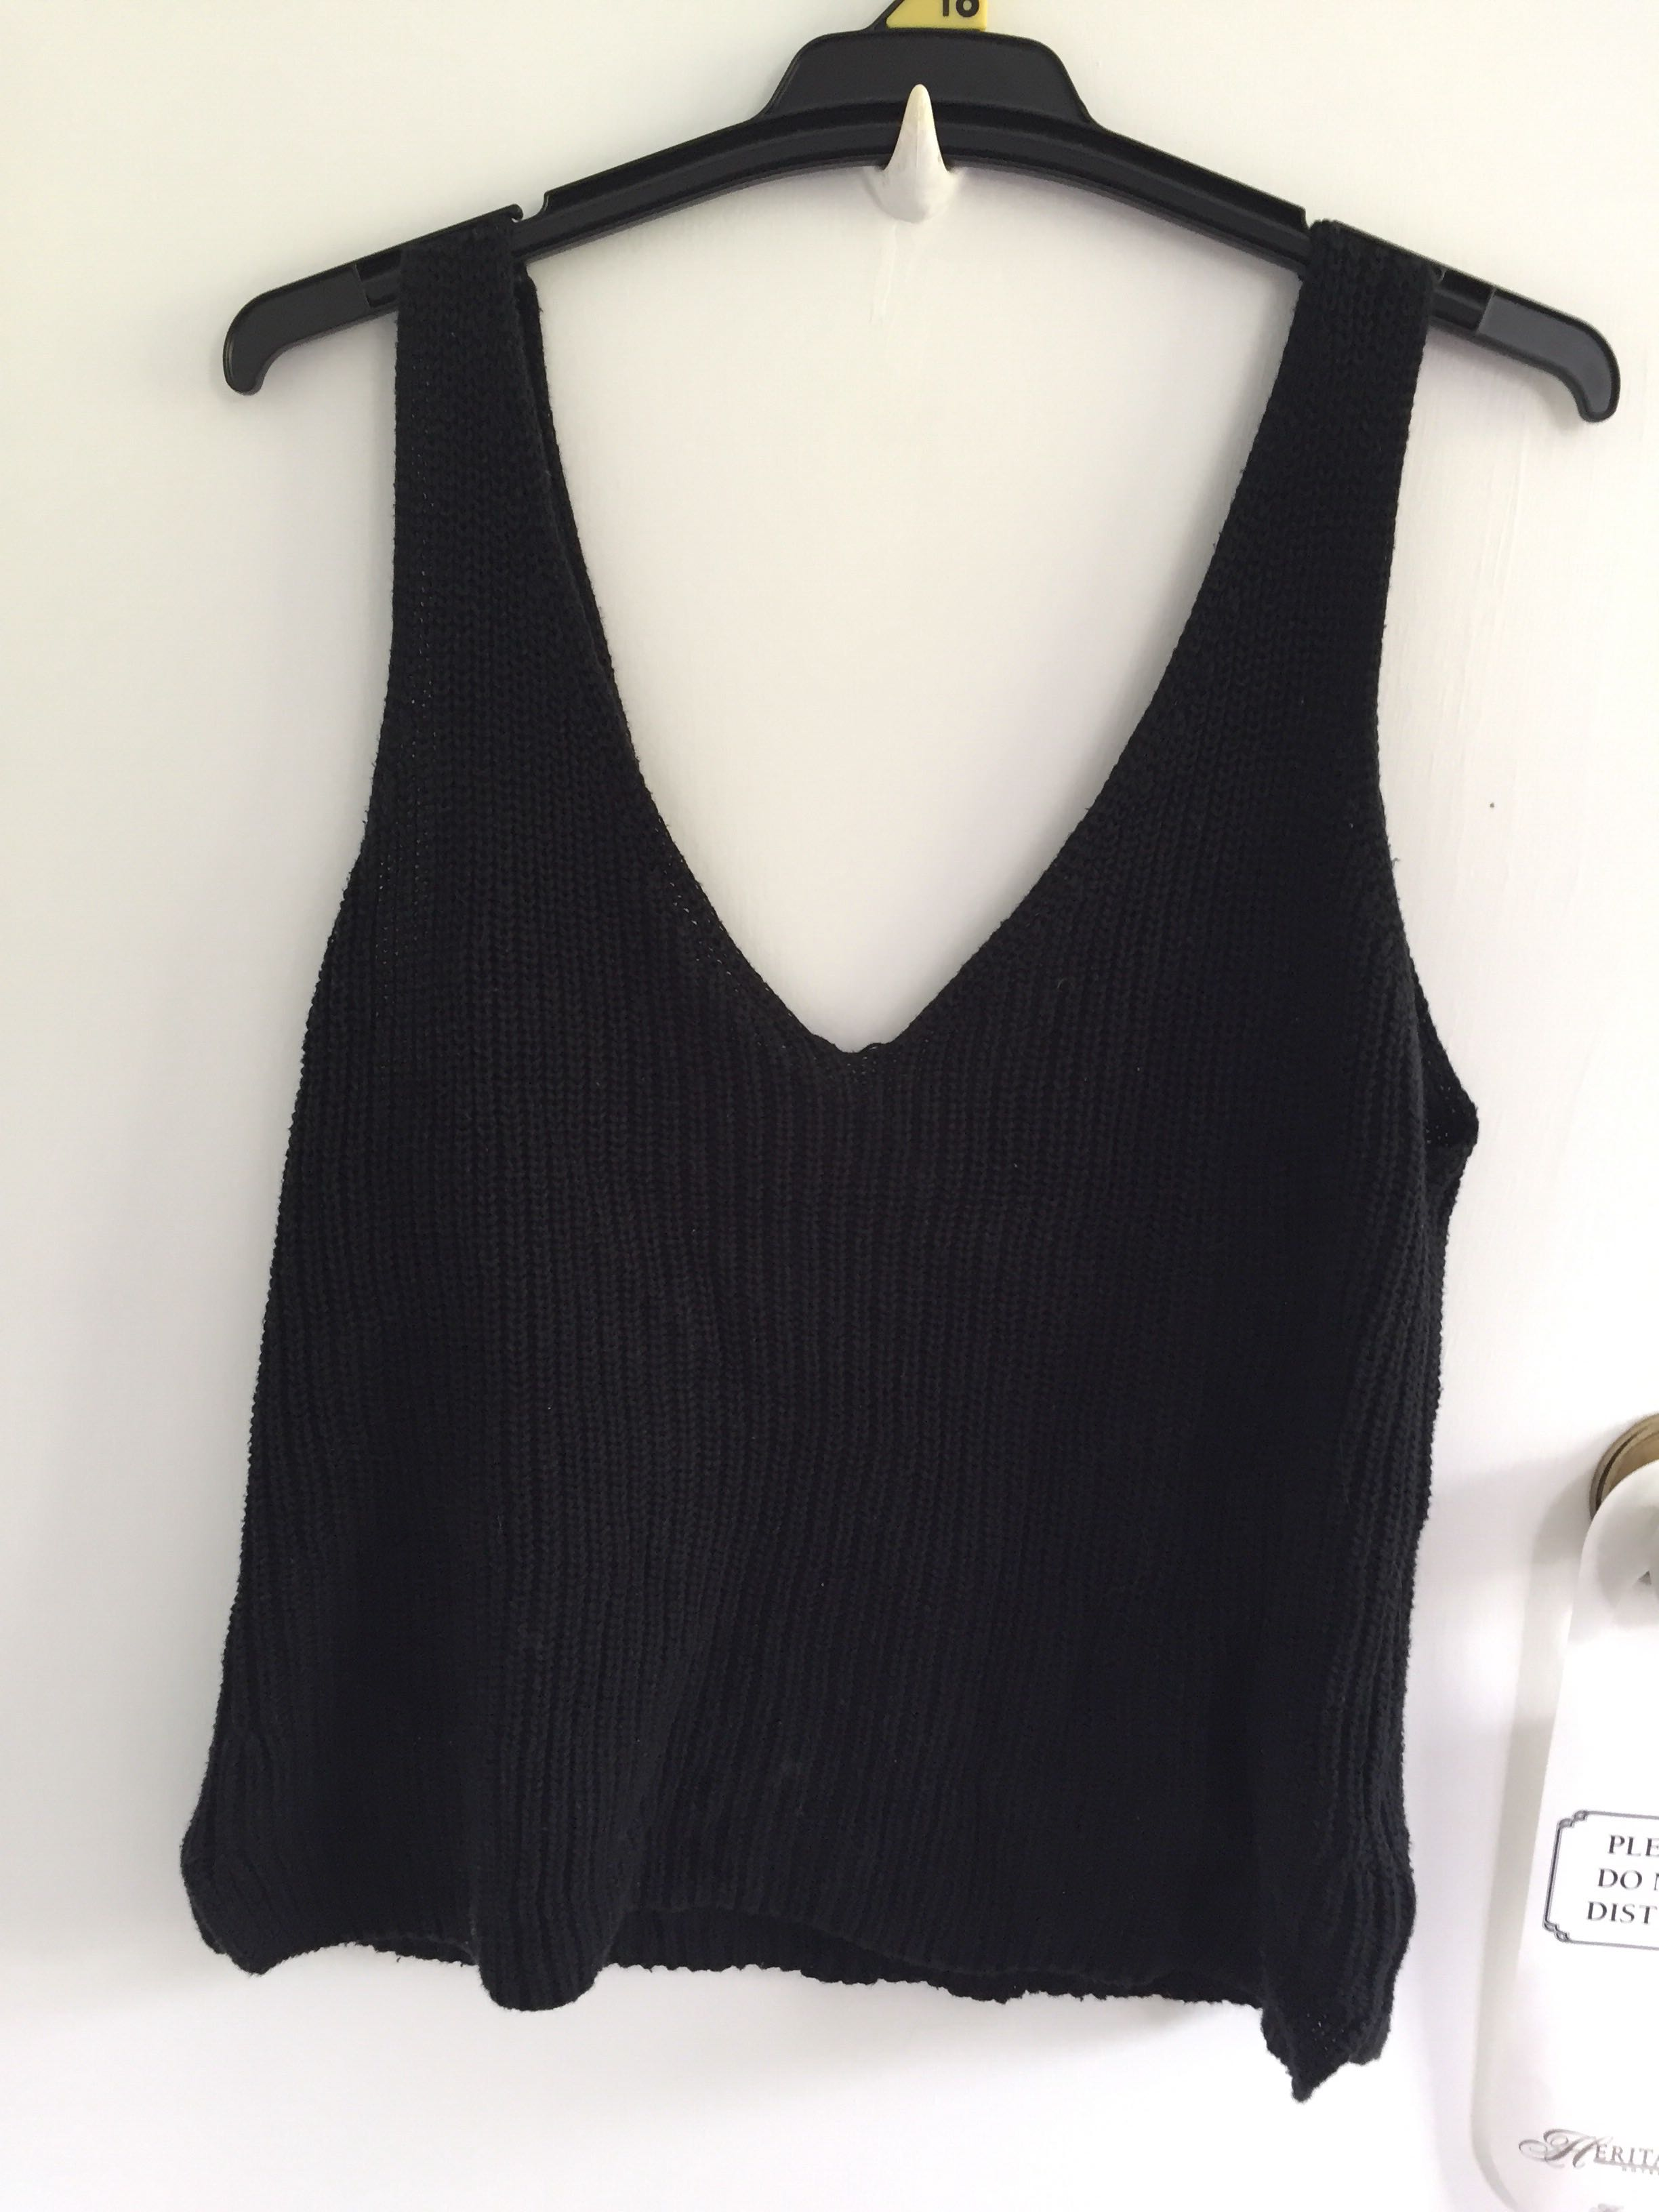 Glassons knitted singlet